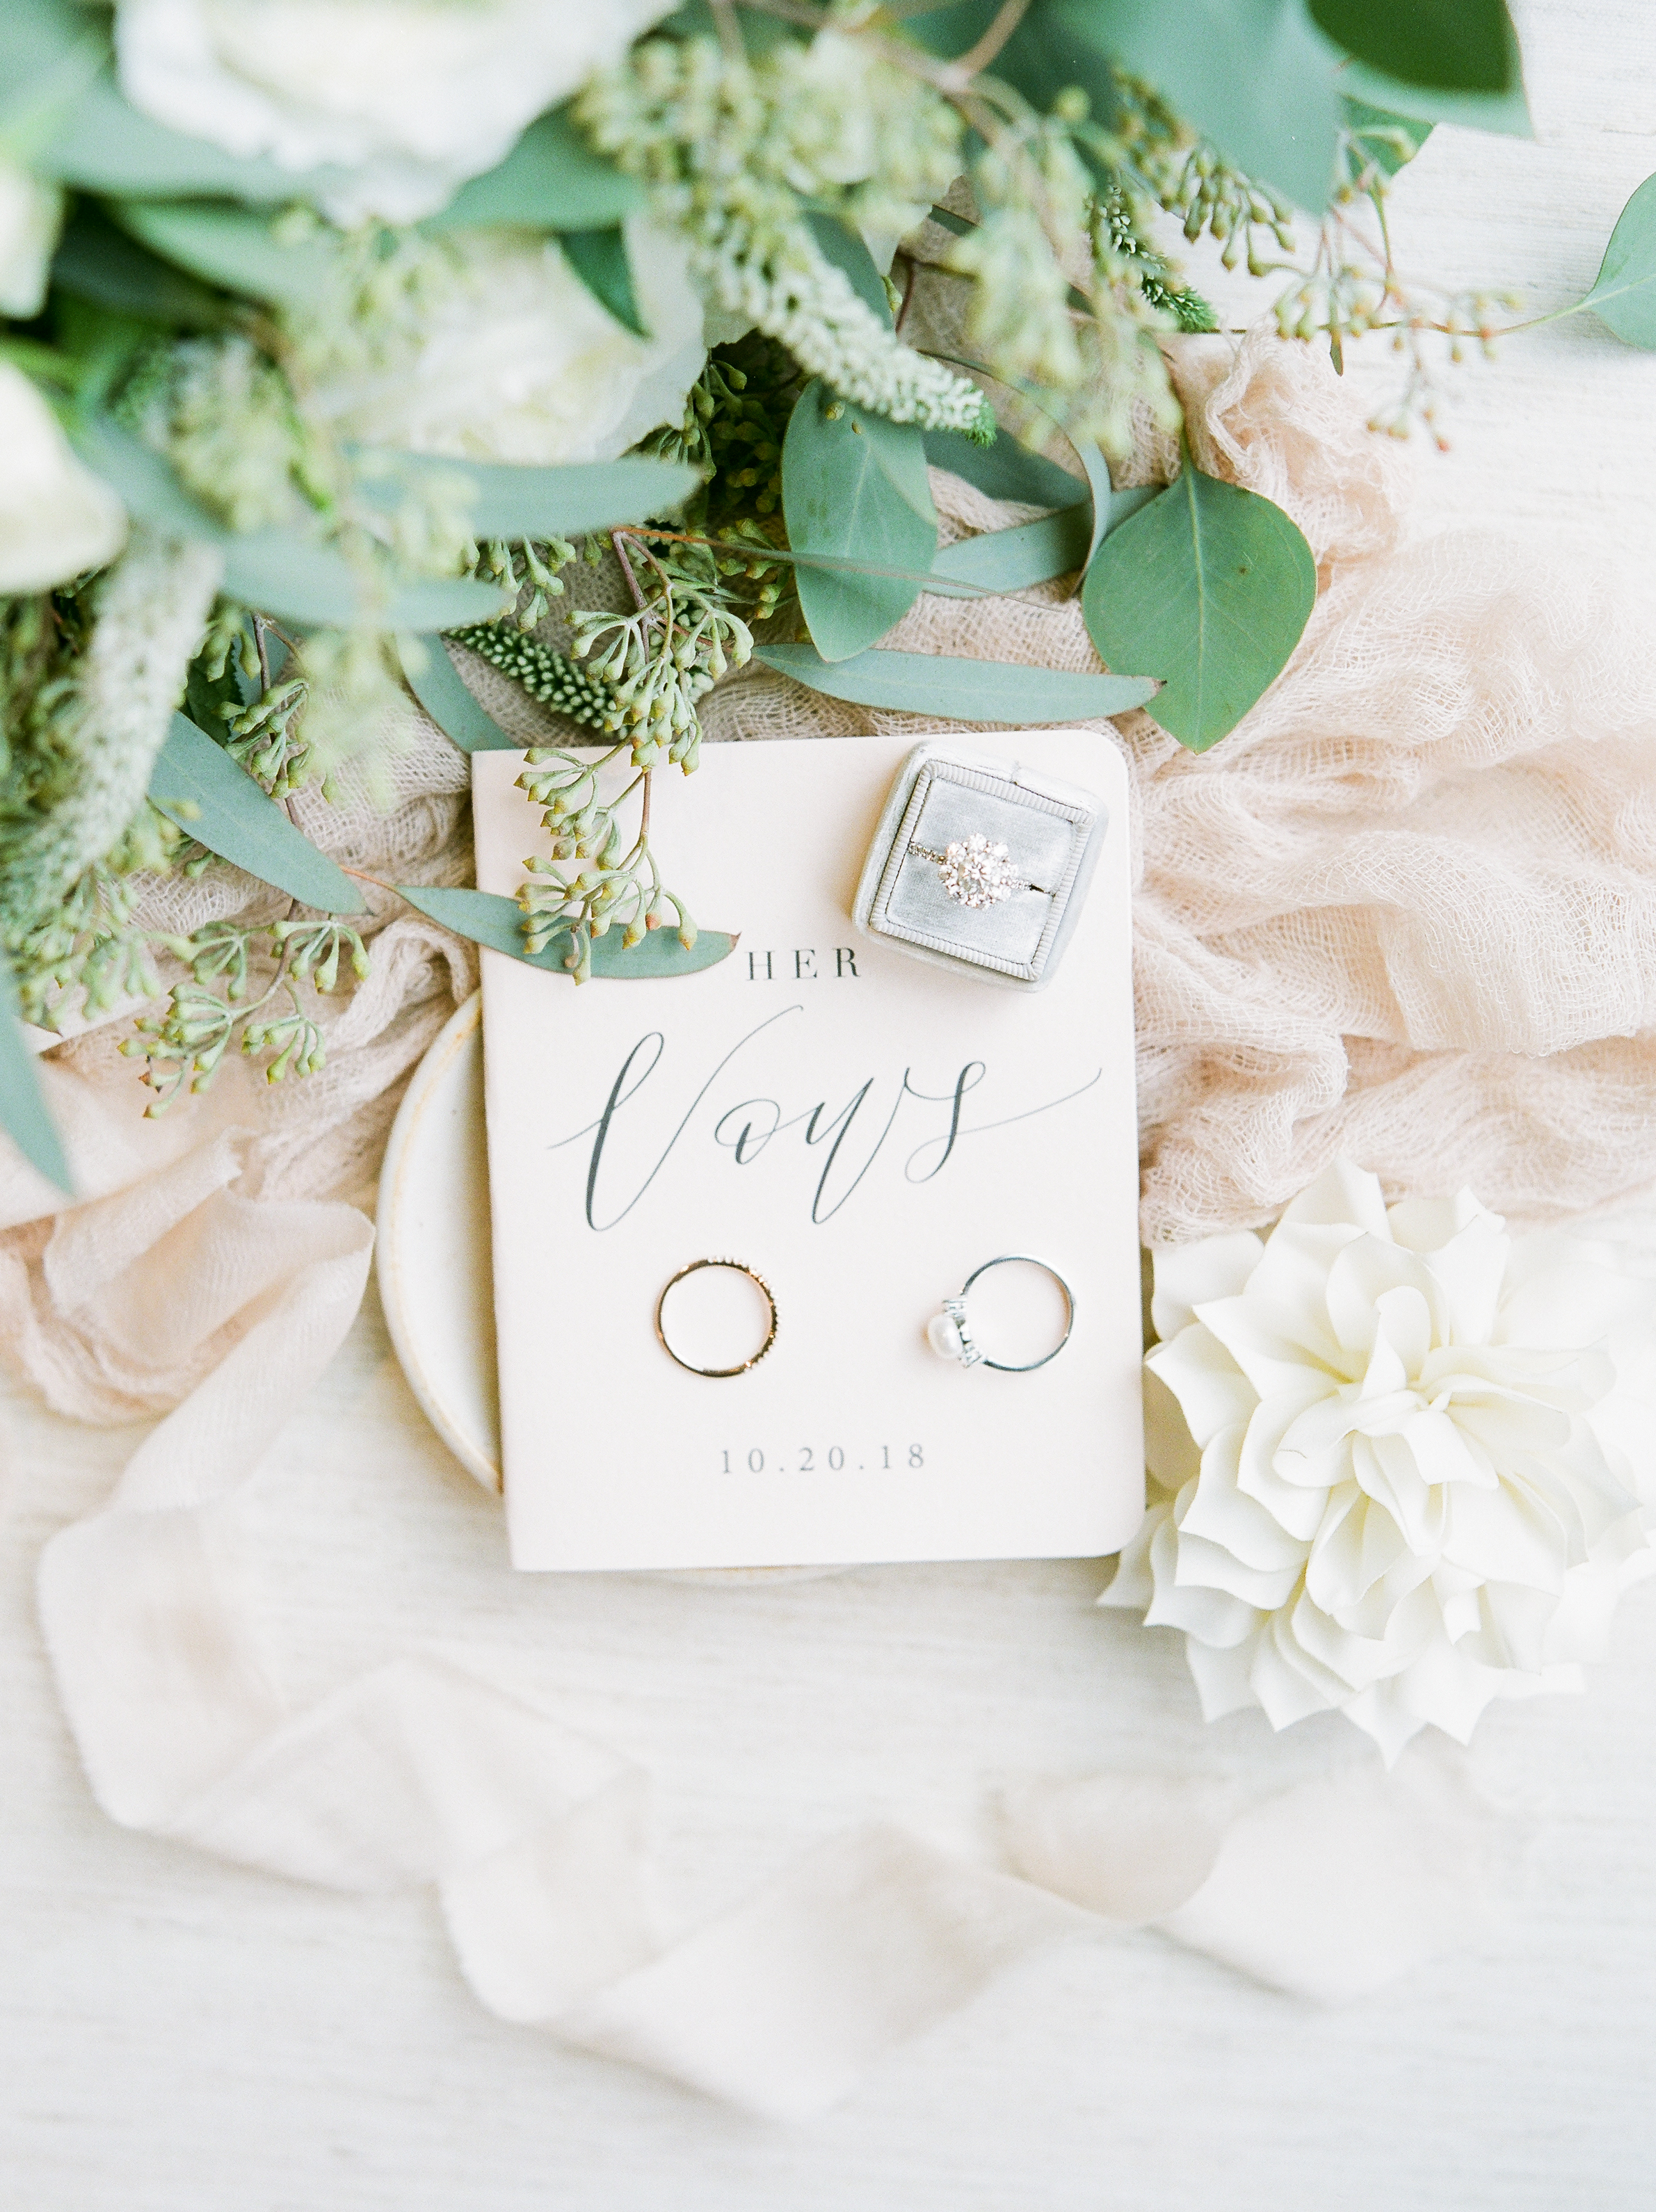 Vow books and rings